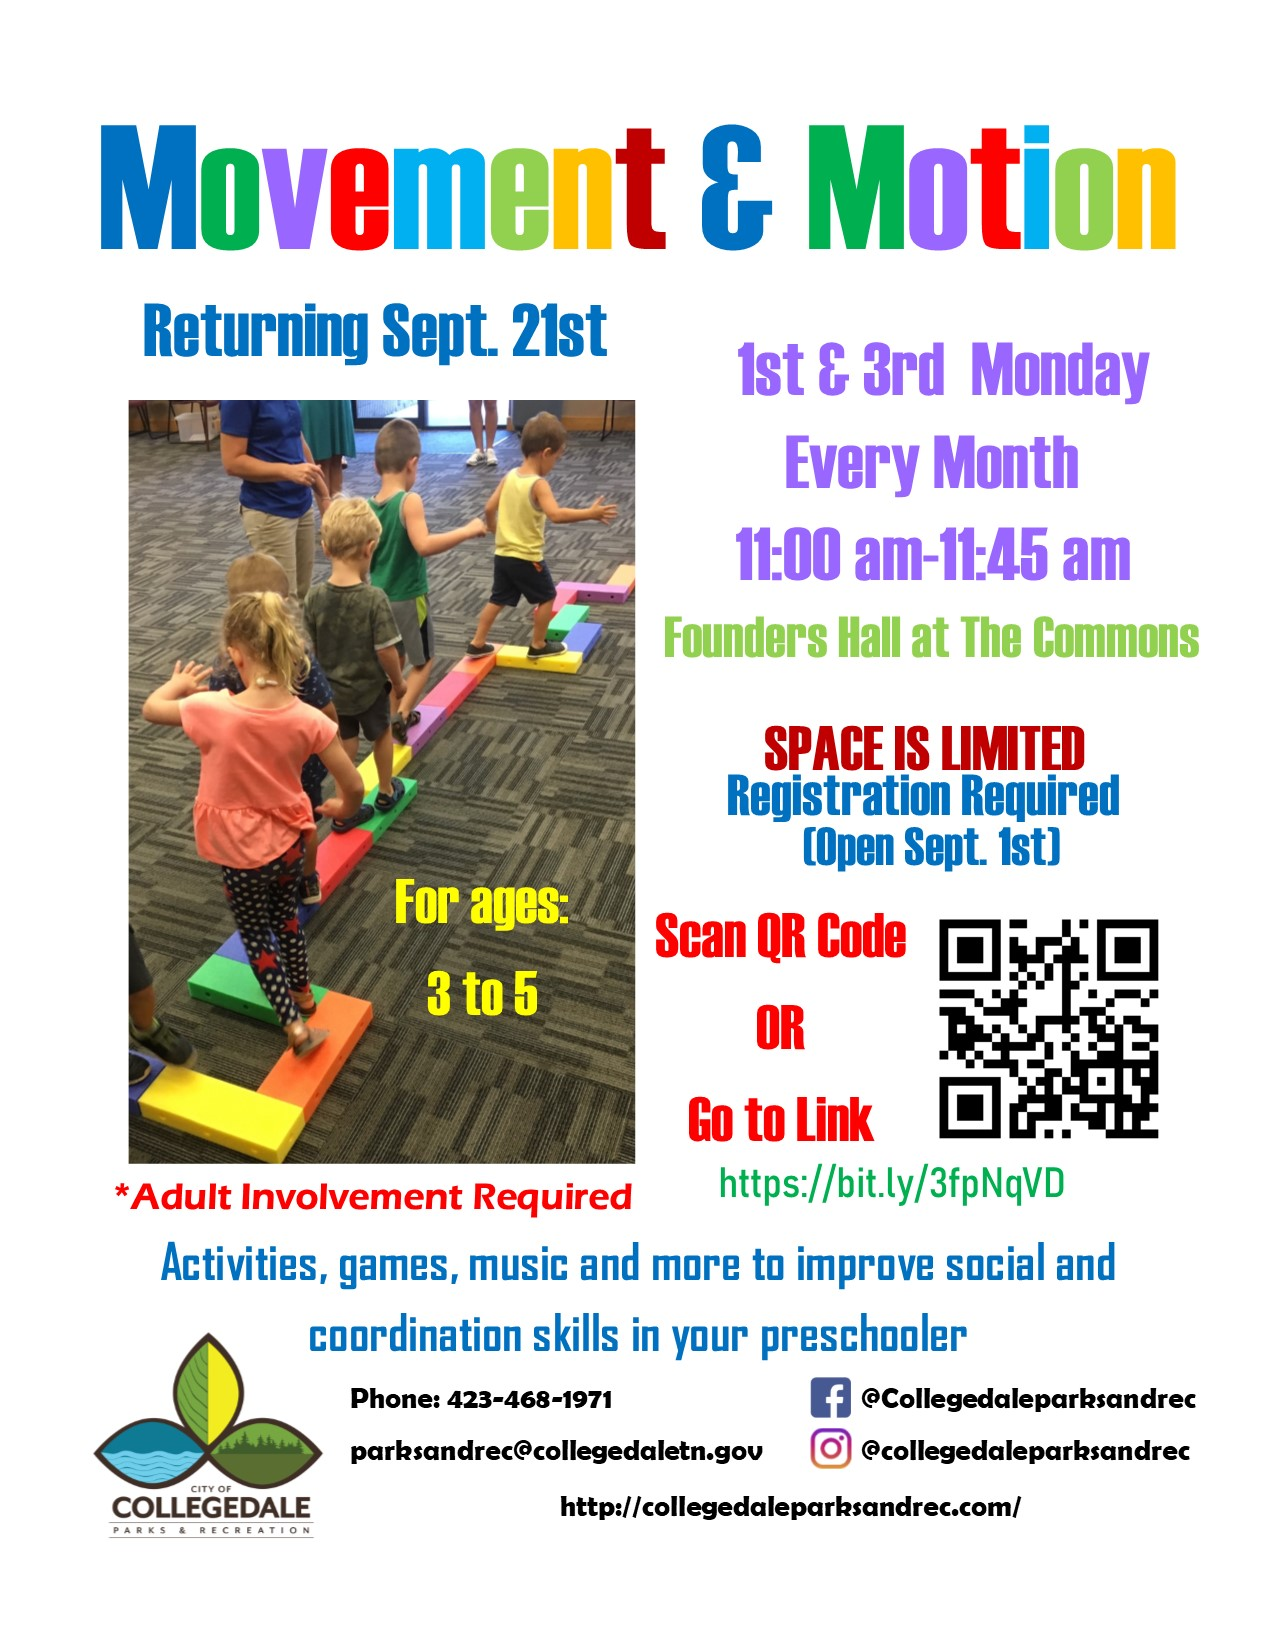 Movement and Motion Flyer 2020